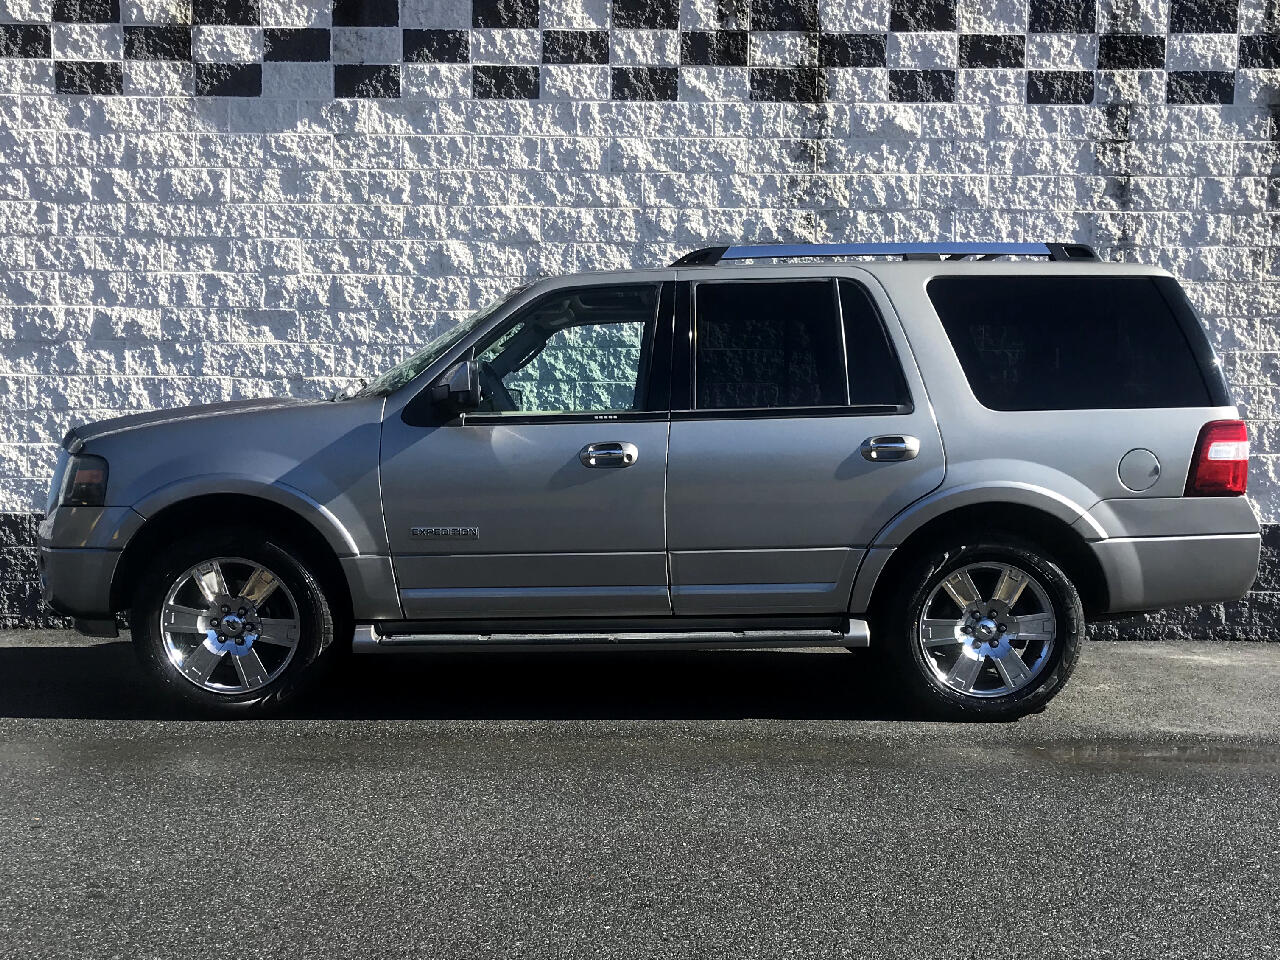 2008 Ford Expedition 4dr Limited 4WD